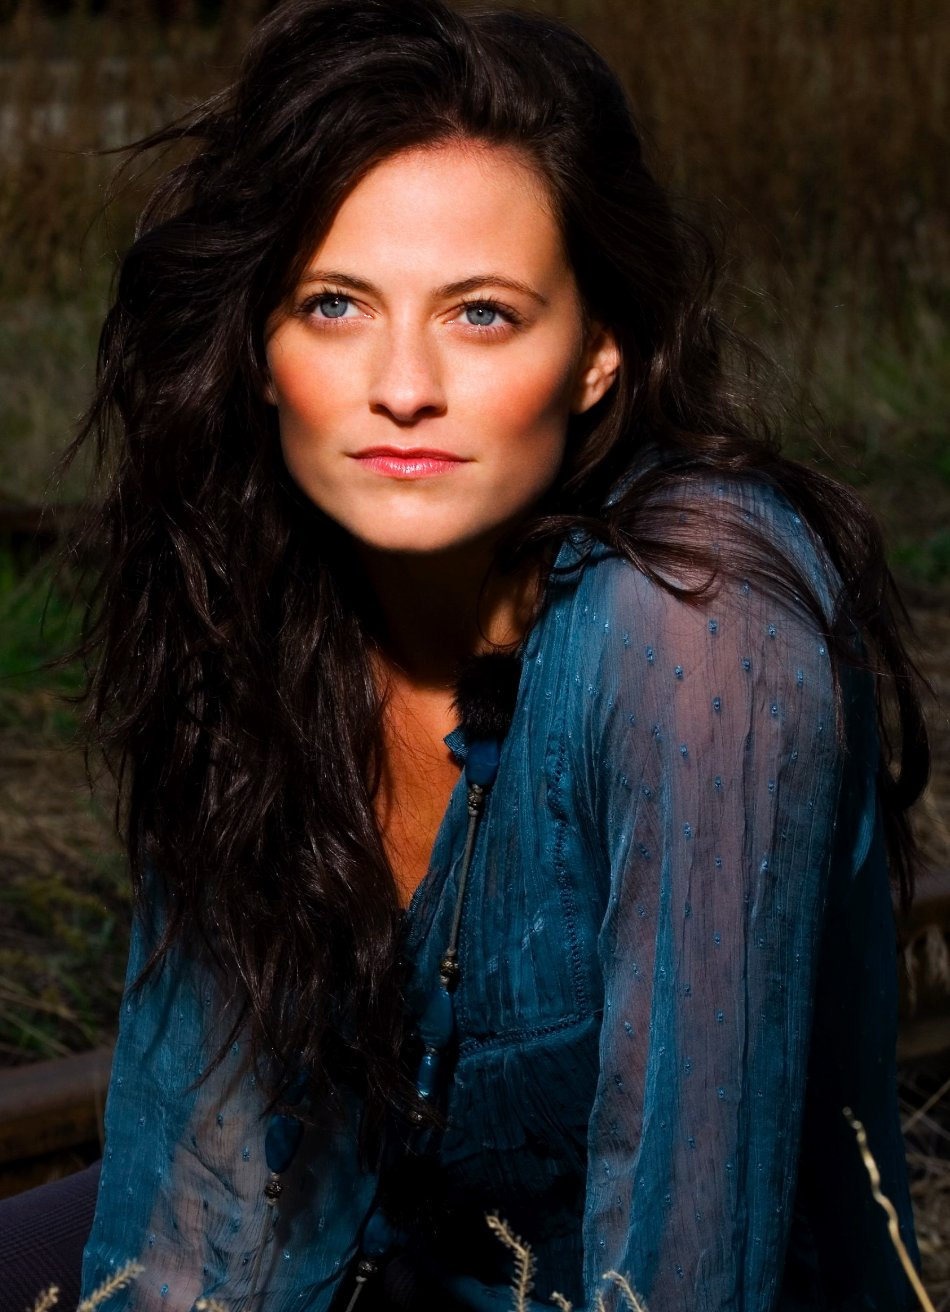 lara pulver leatherlara pulver gif, lara pulver photoshoot, lara pulver edge of tomorrow, lara pulver tom hiddleston, lara pulver wiki, lara pulver sherlock season 4, lara pulver фото, lara pulver 2016, lara pulver interview, lara pulver benedict cumberbatch, lara pulver andrew scott, lara pulver insta, lara pulver fan, lara pulver listal, lara pulver and benedict cumberbatch fanfic, lara pulver вк, lara pulver accent, lara pulver quantico, lara pulver leather, lara pulver sherlock the final problem